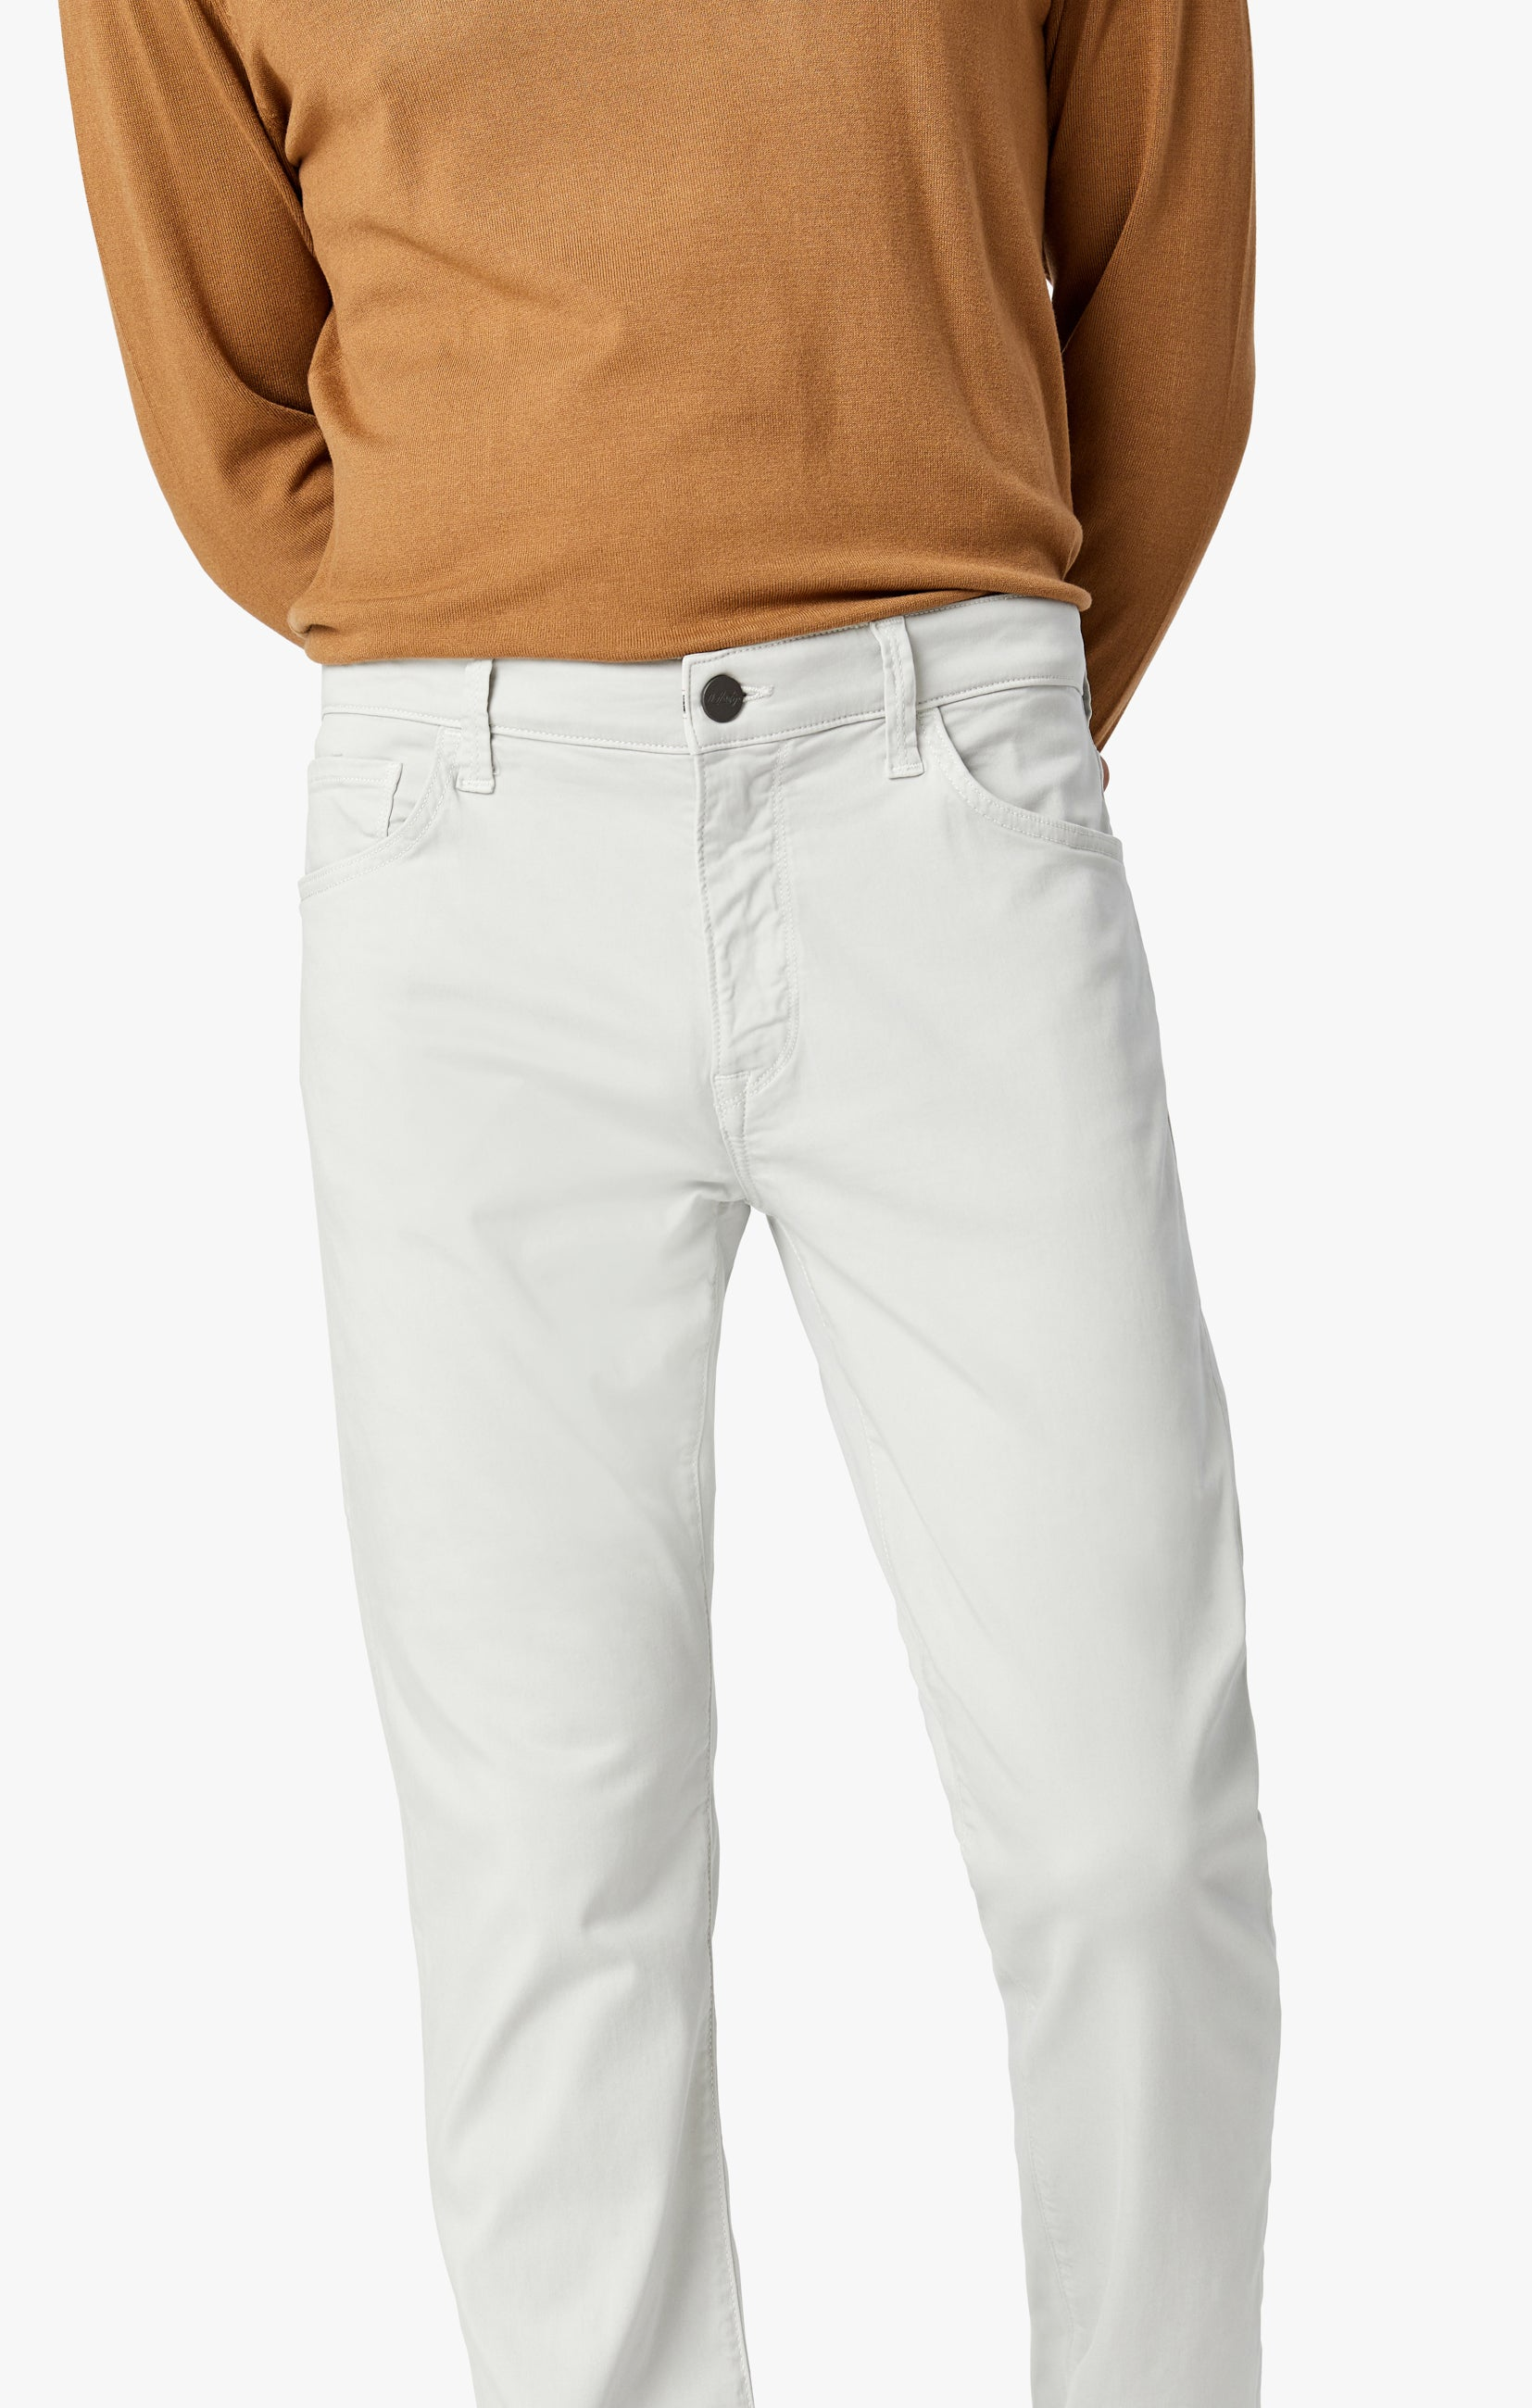 Courage Straight Leg Jeans in Bone Twill Image 7